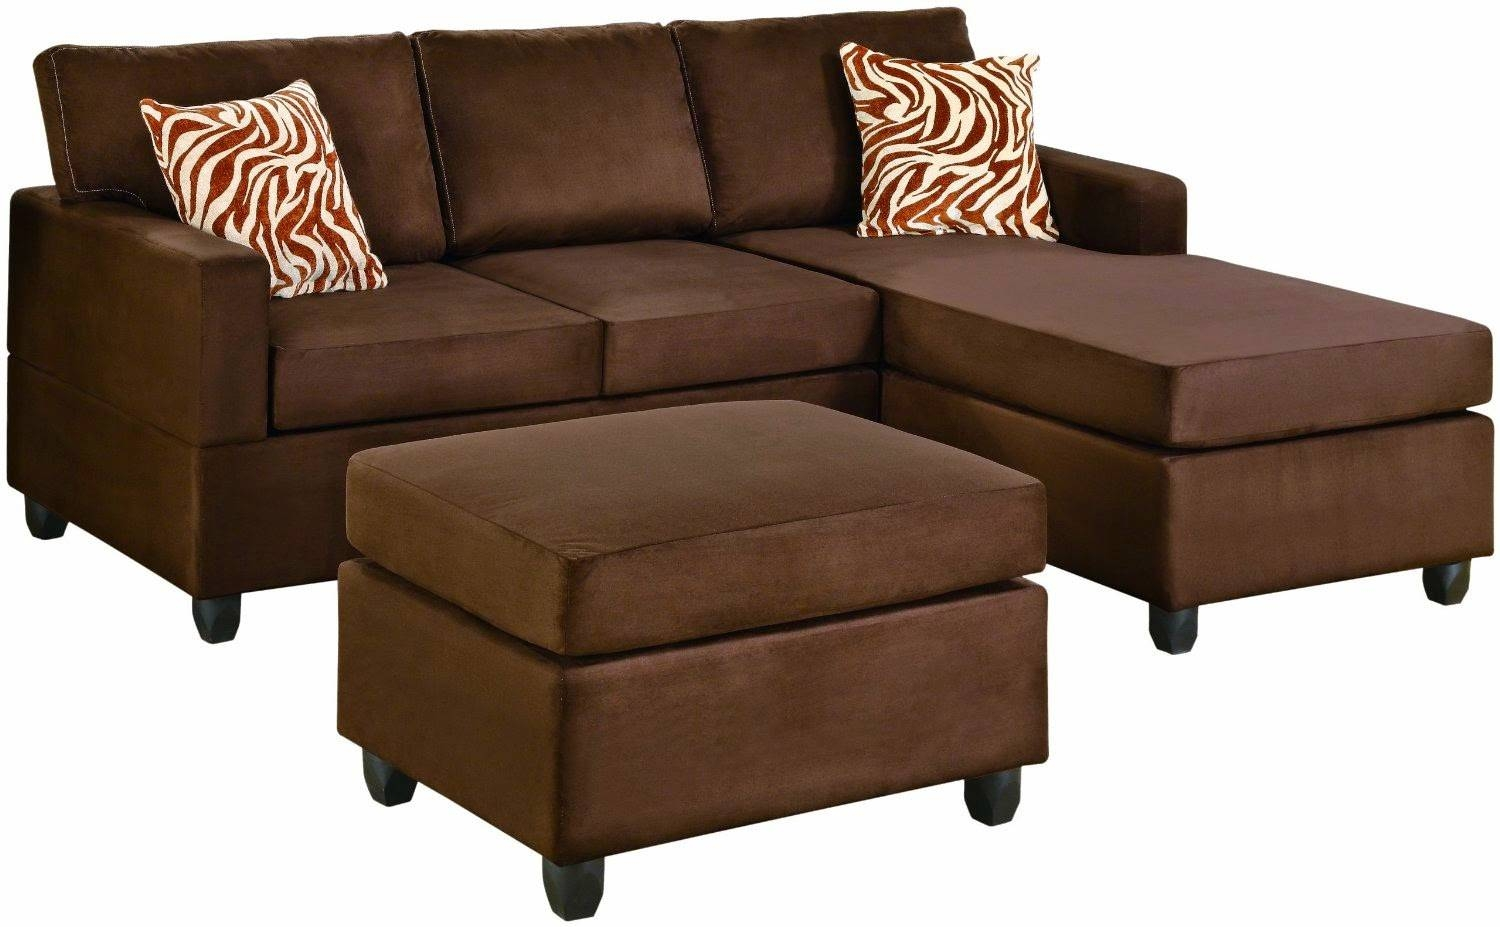 10 Piece Sectional Sofa - Hotelsbacau in 10 Piece Sectional Sofa (Image 2 of 30)